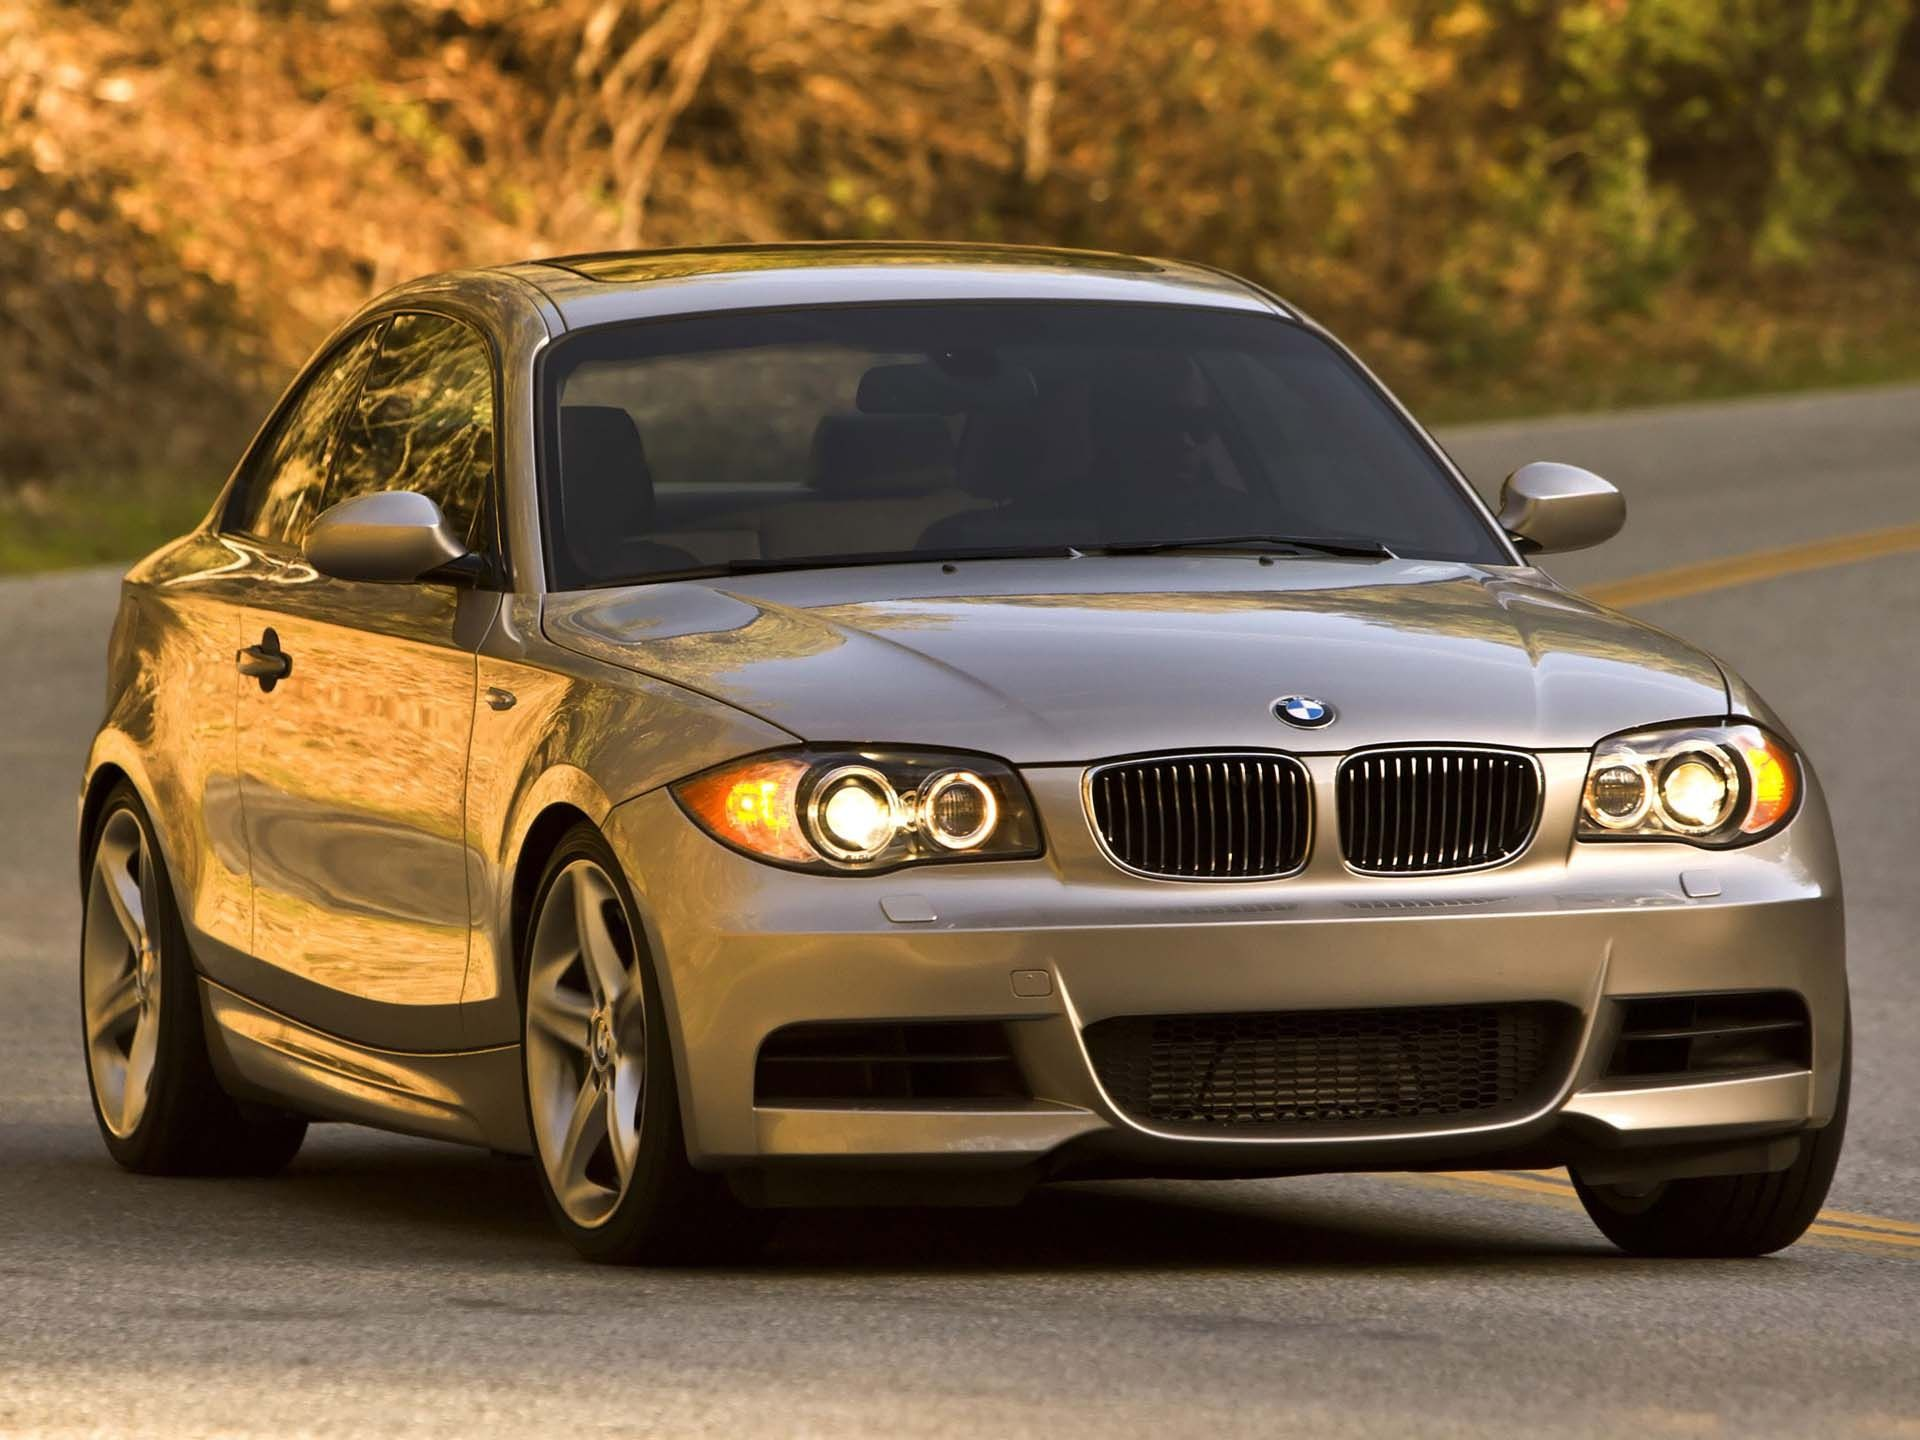 M Cabrio E BMW Model Httpautotrascom Auto Pinterest - Bmw 1 series usa